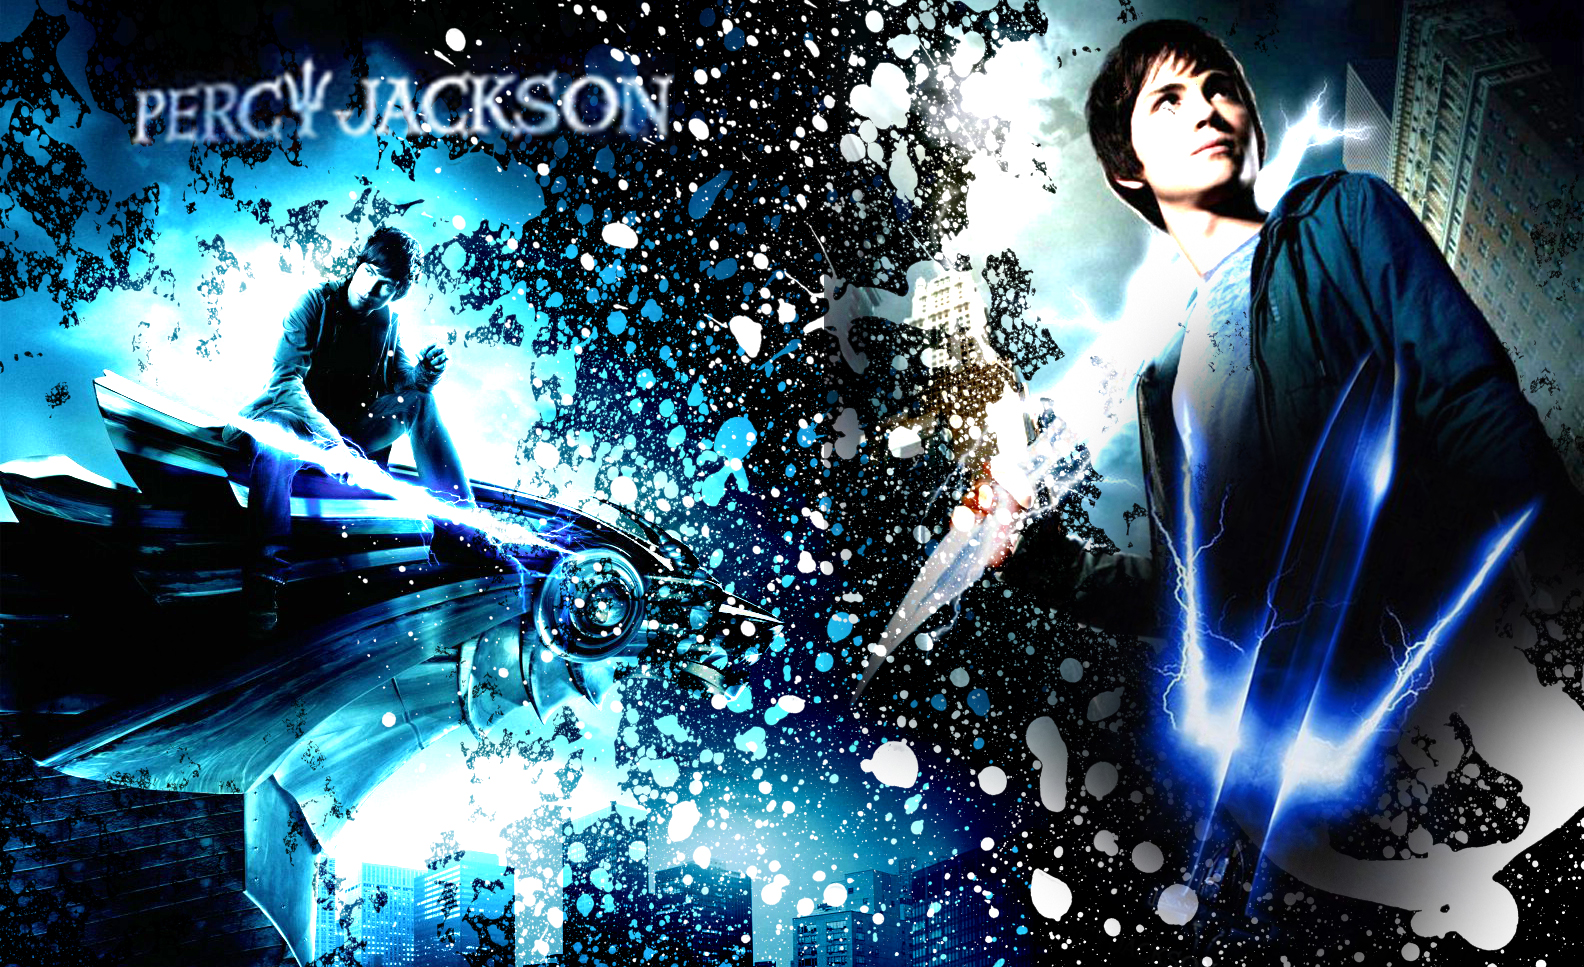 Percy Jackson and the Olympians images Percy Jackson HD ...